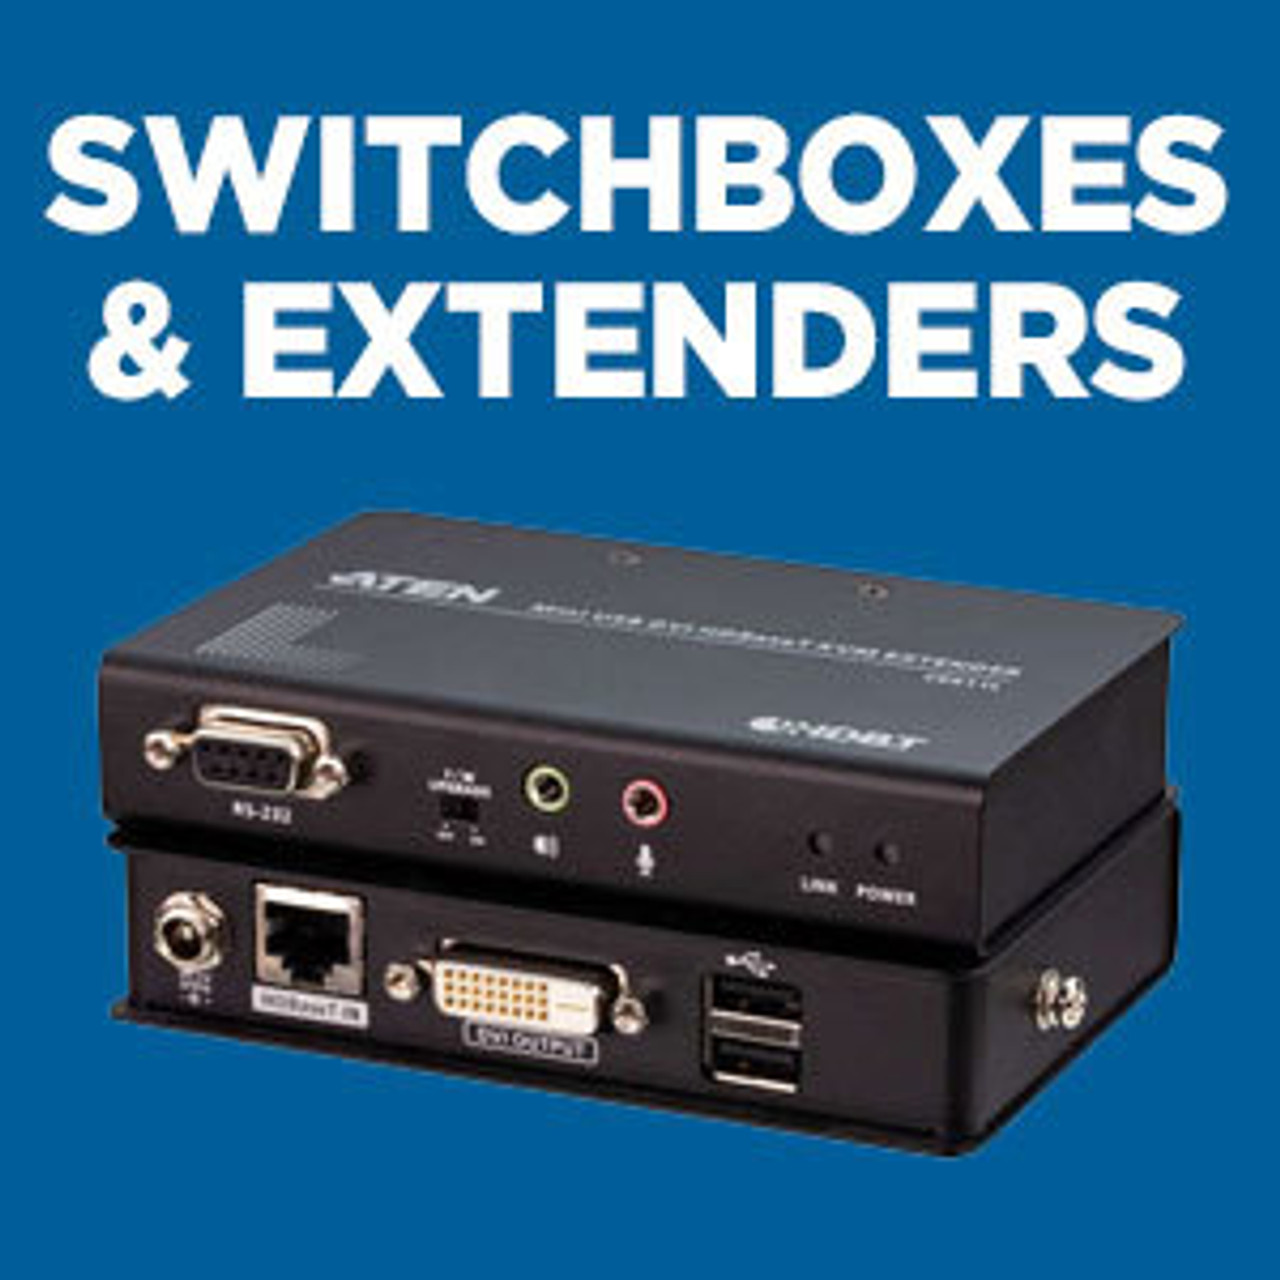 Switchboxes & Extenders